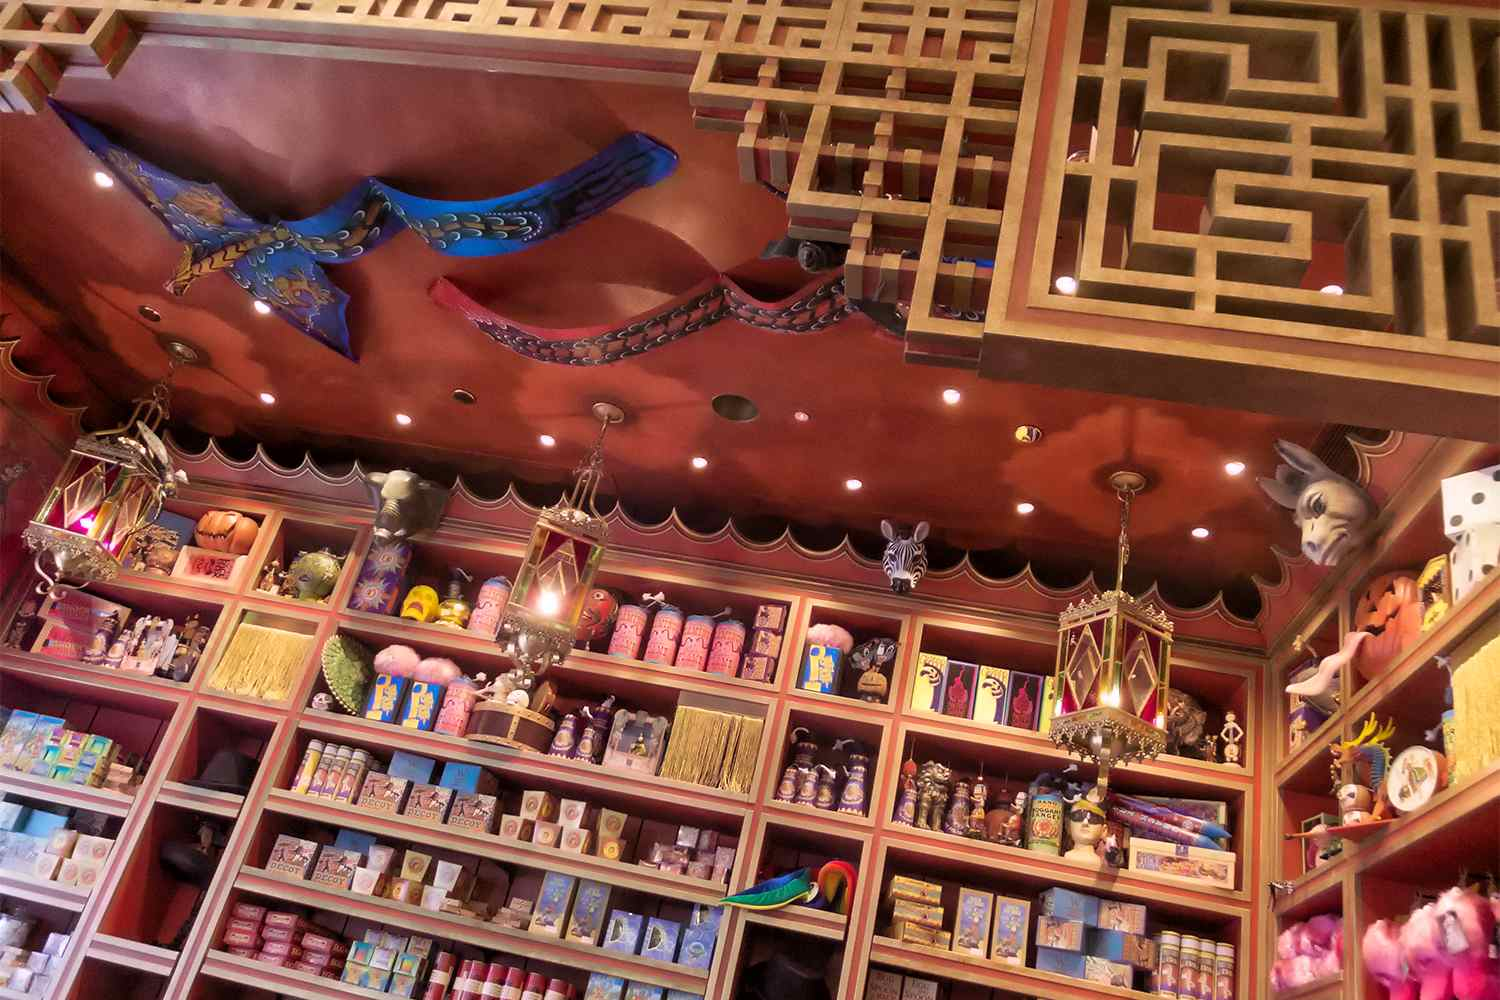 Shopping at Wizarding World of Harry Potter